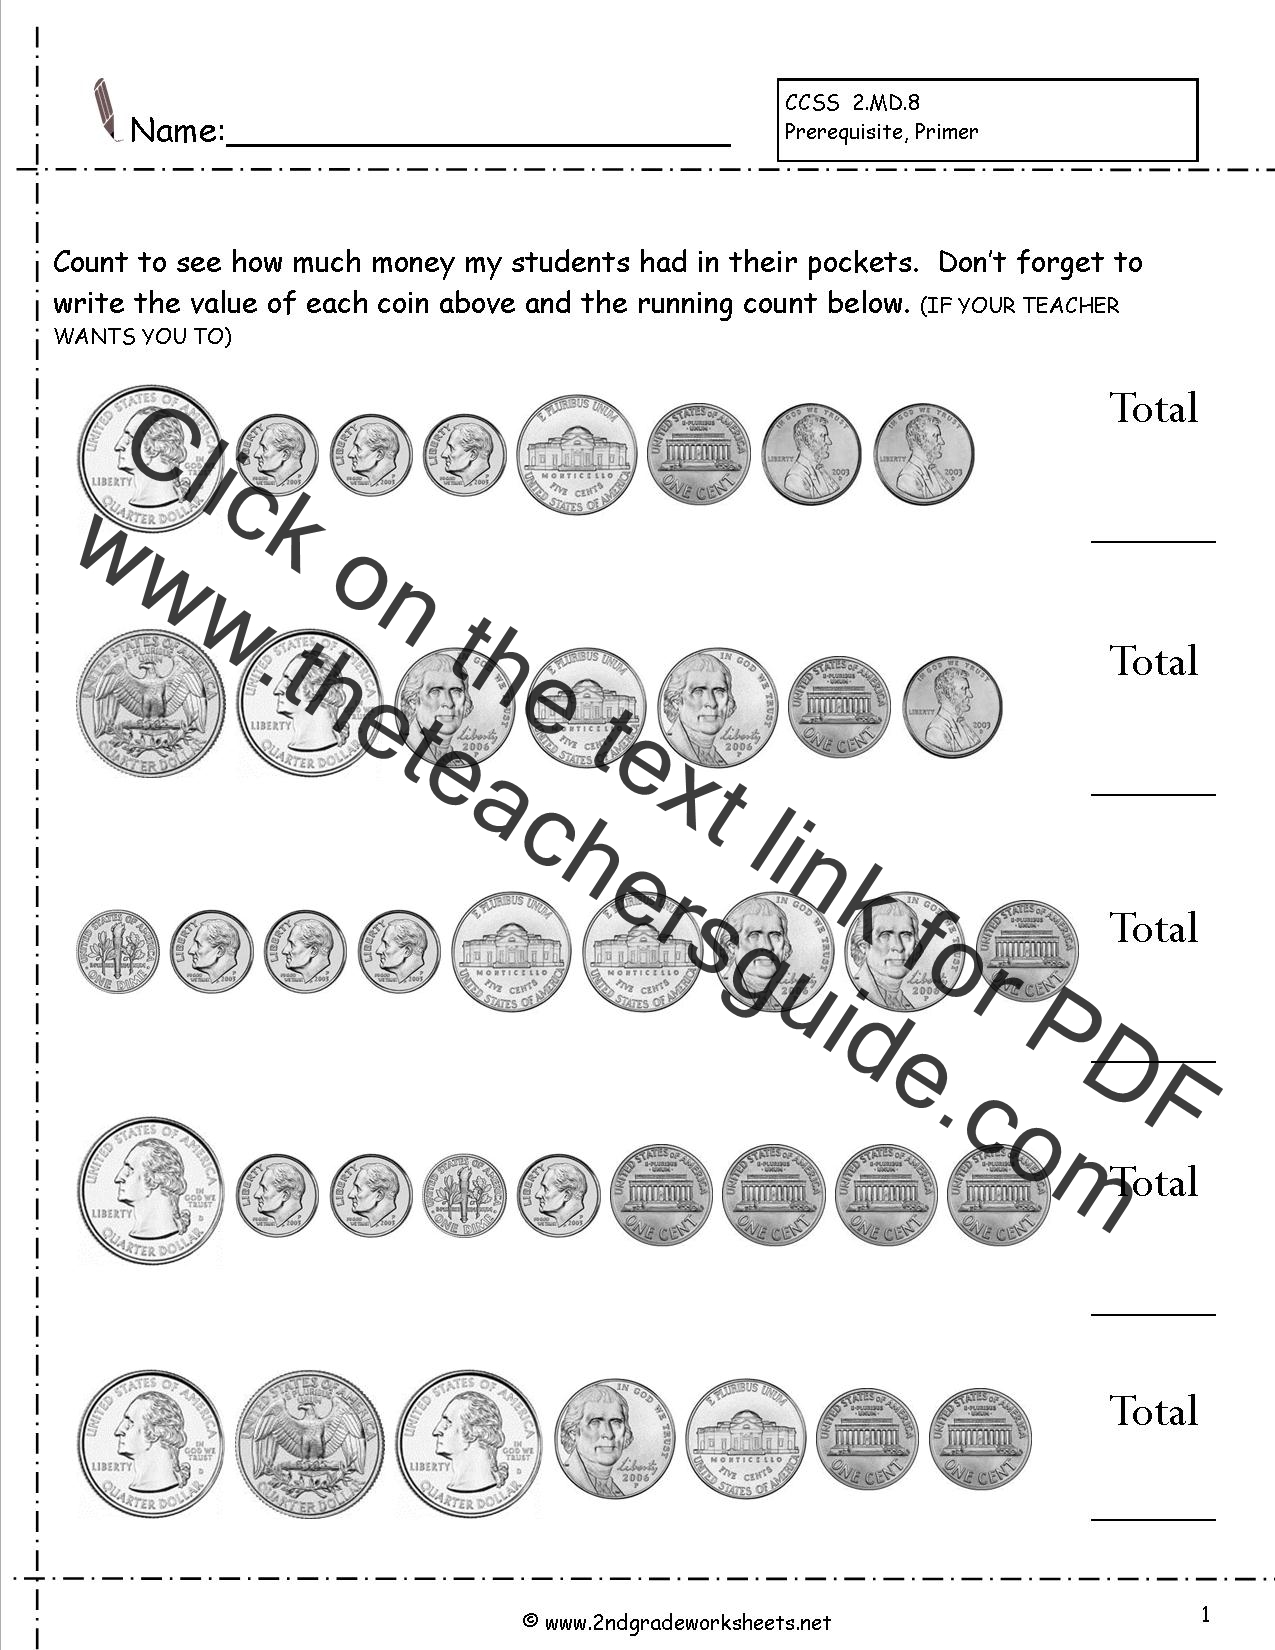 Worksheets Coin Counting Worksheets counting coins and money worksheets printouts with quarters